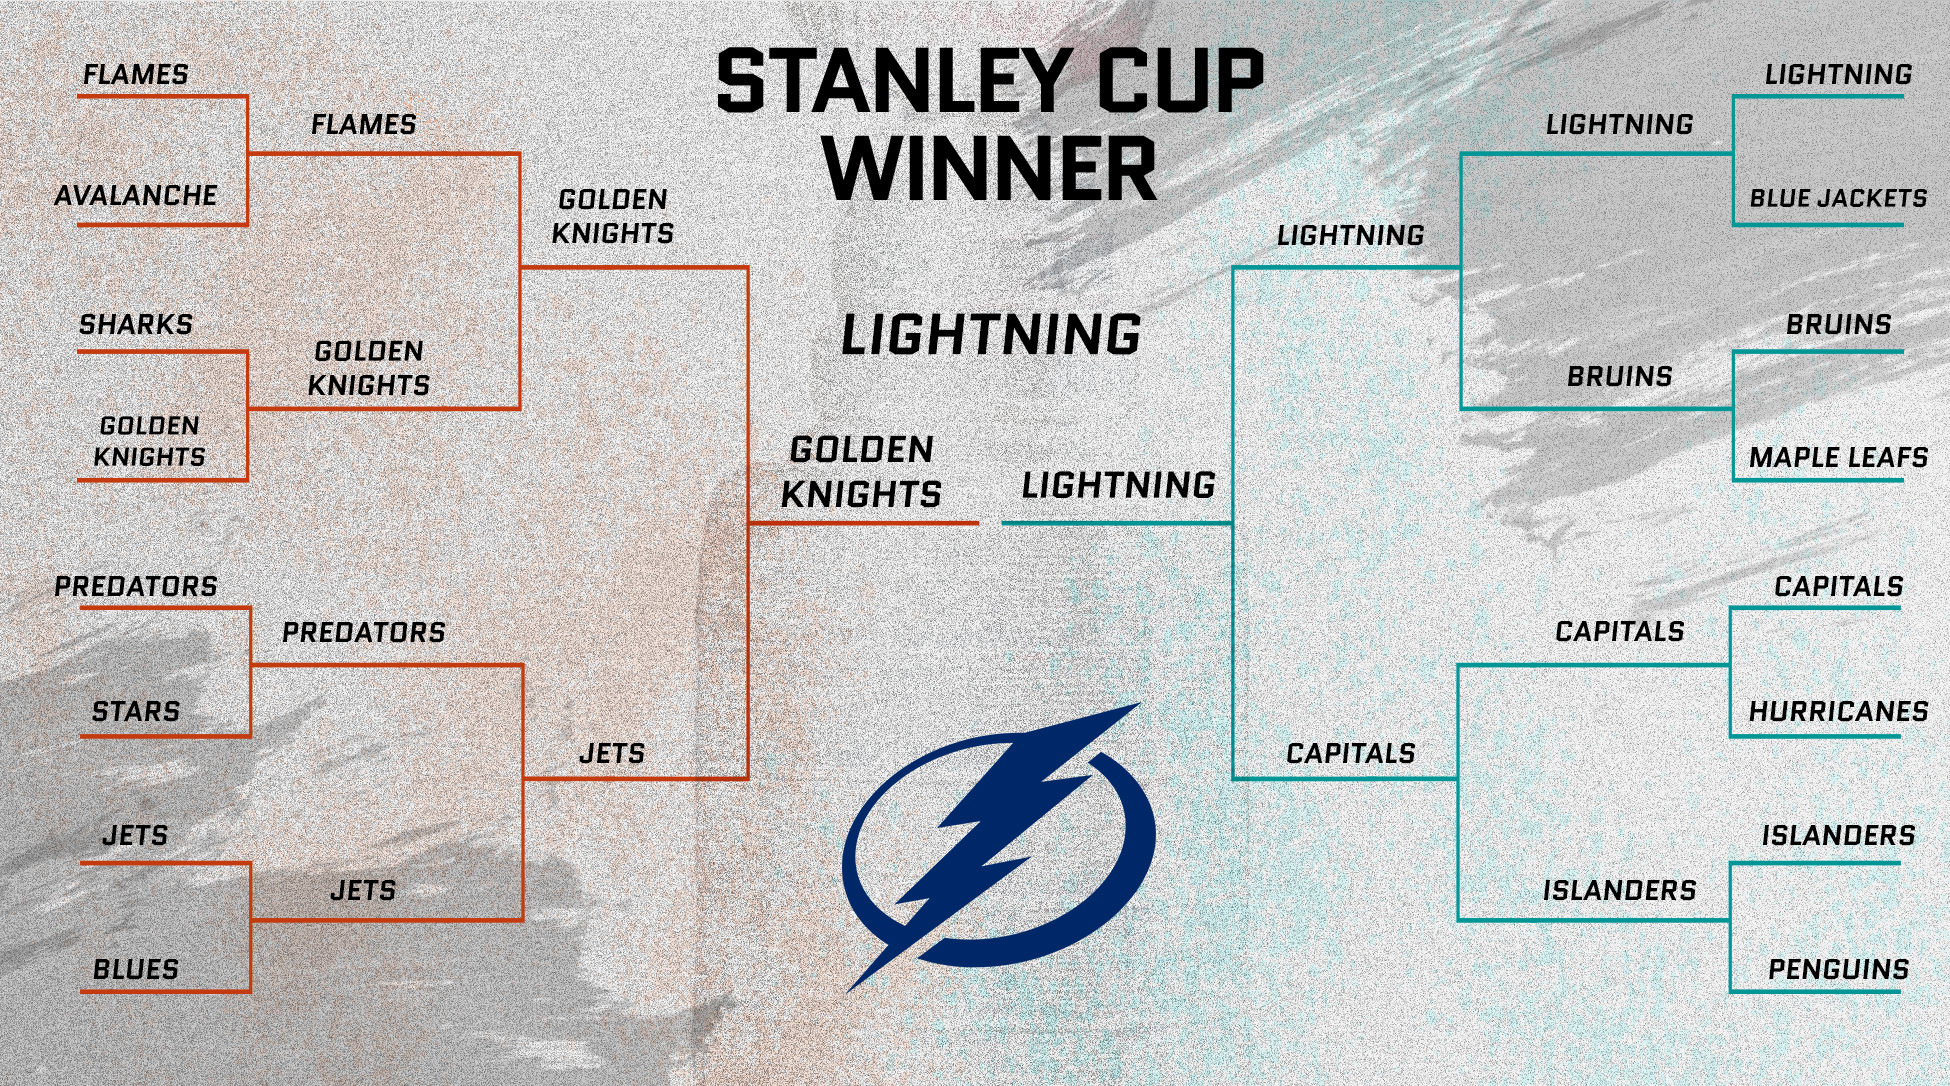 Nhl Playoffs Expert Picks Brackets Winners For The Stanley Cup